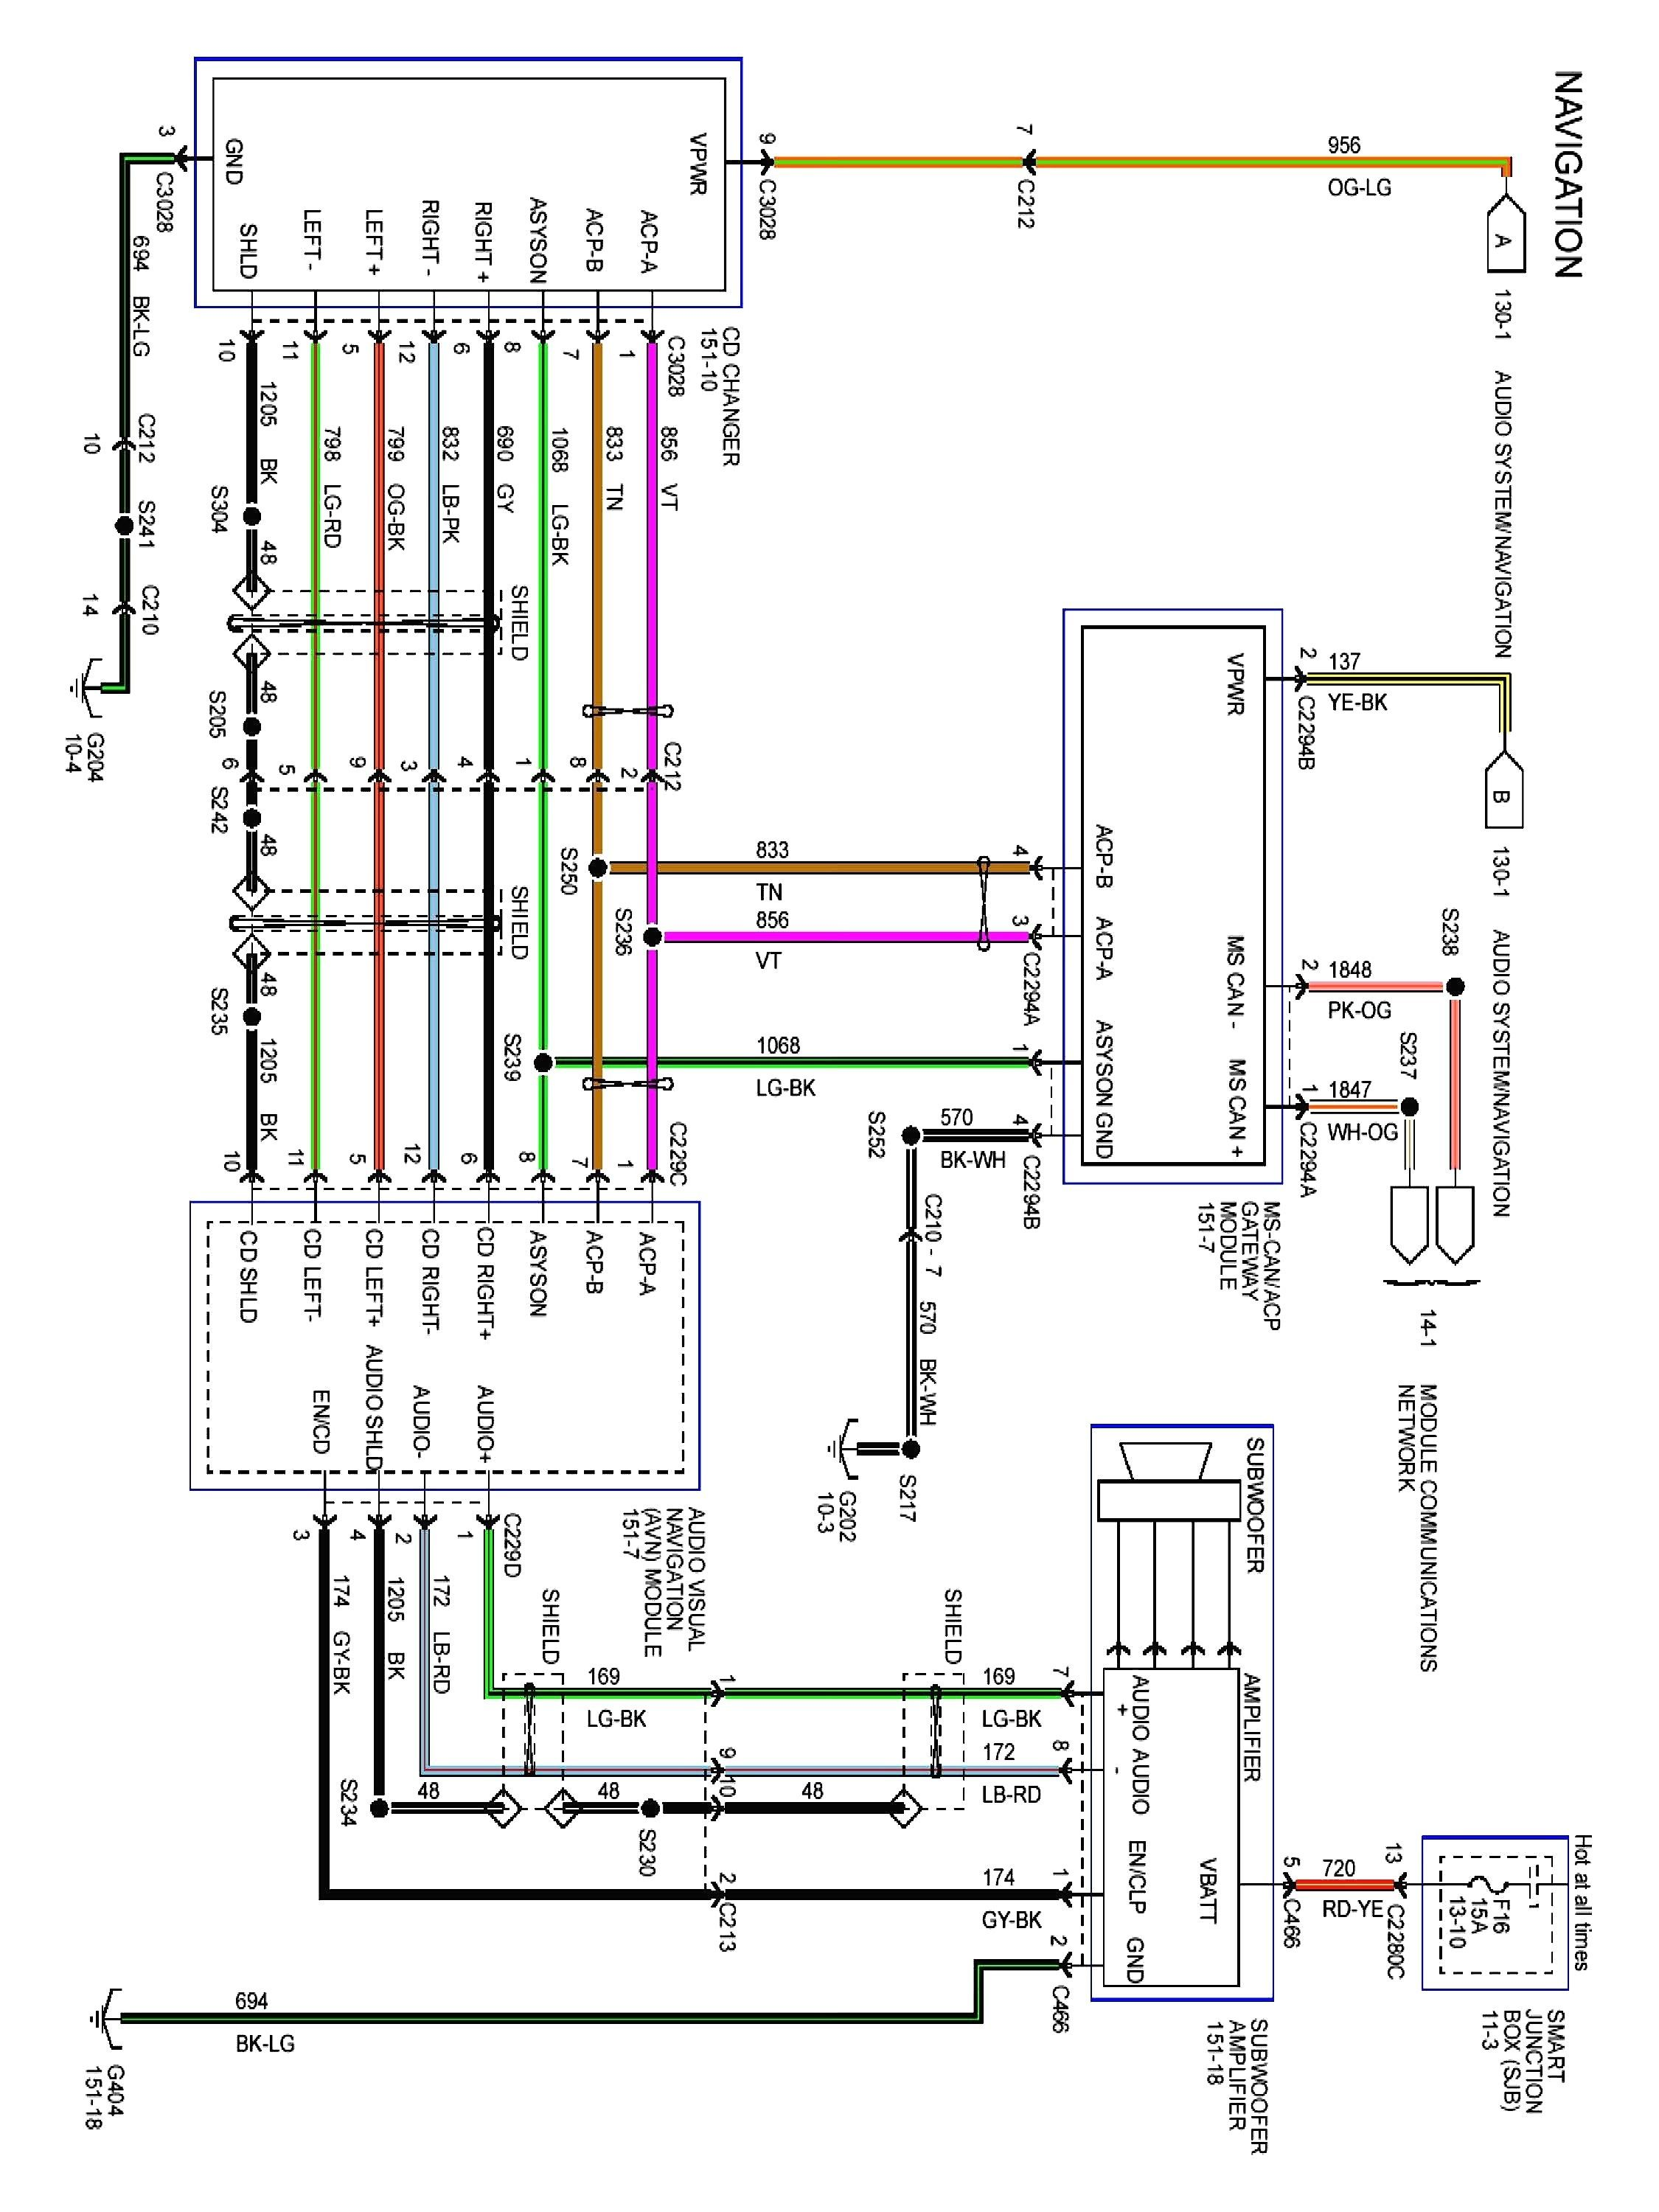 Unique Wiring Plan Diagram Wiringdiagram Diagramming Diagramm Visuals Visualisation Graphic Ford Expedition Electrical Wiring Diagram Electrical Diagram